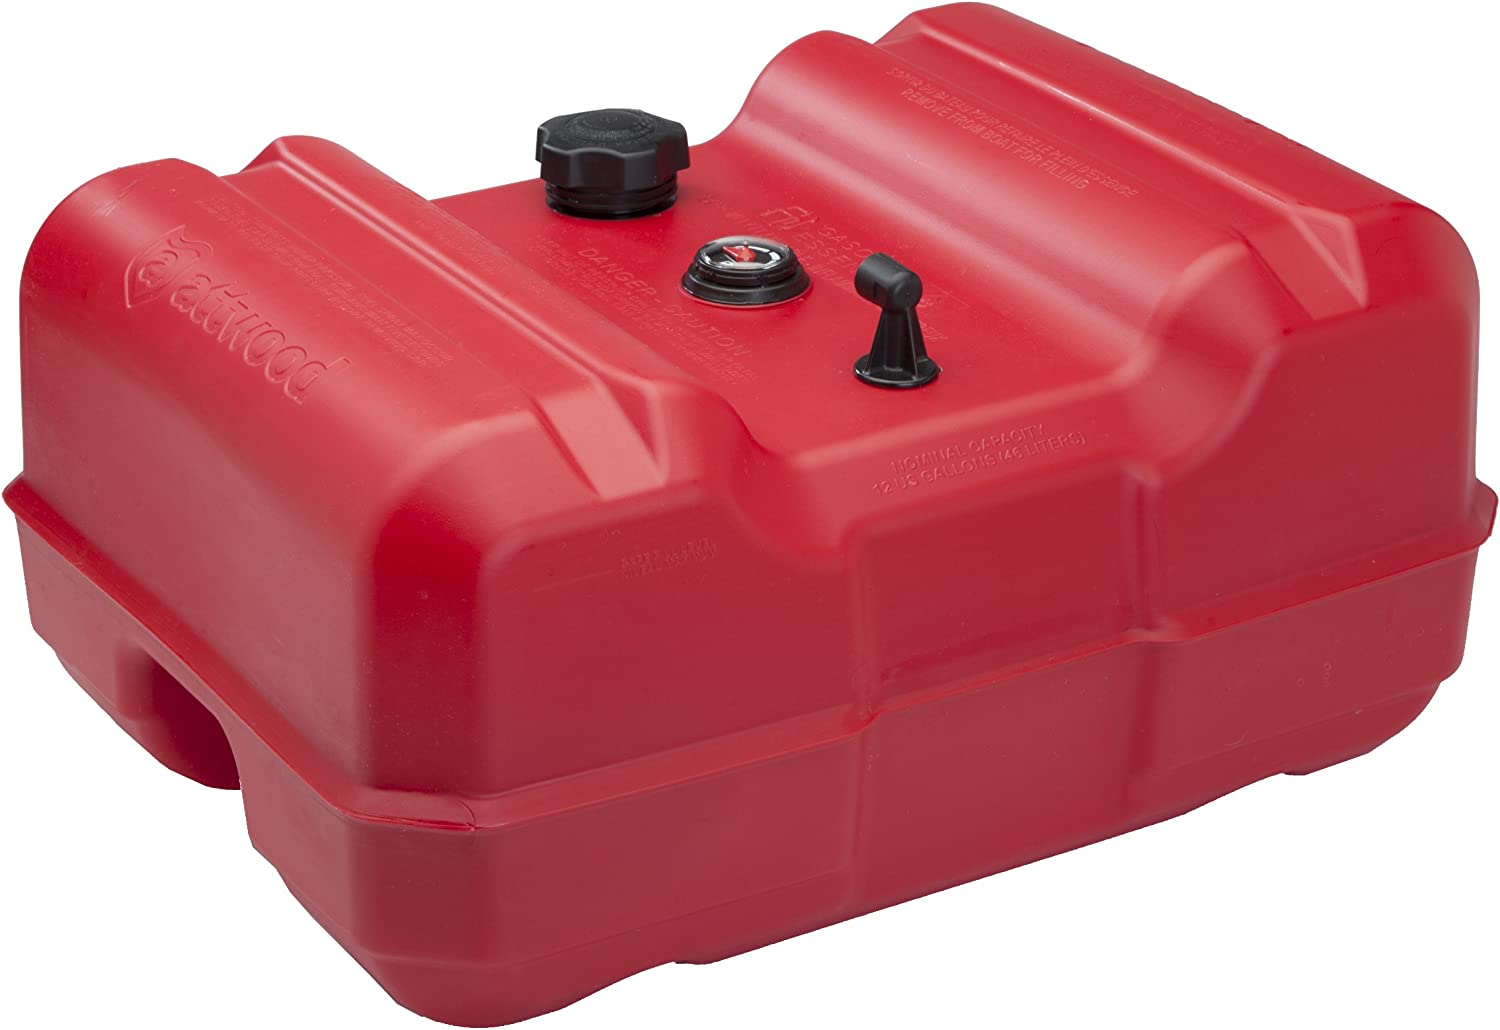 Attwood 8812LLPG2 EPA Certified 12 Gallon Low-Profile Portable Fuel Tank with Gauge